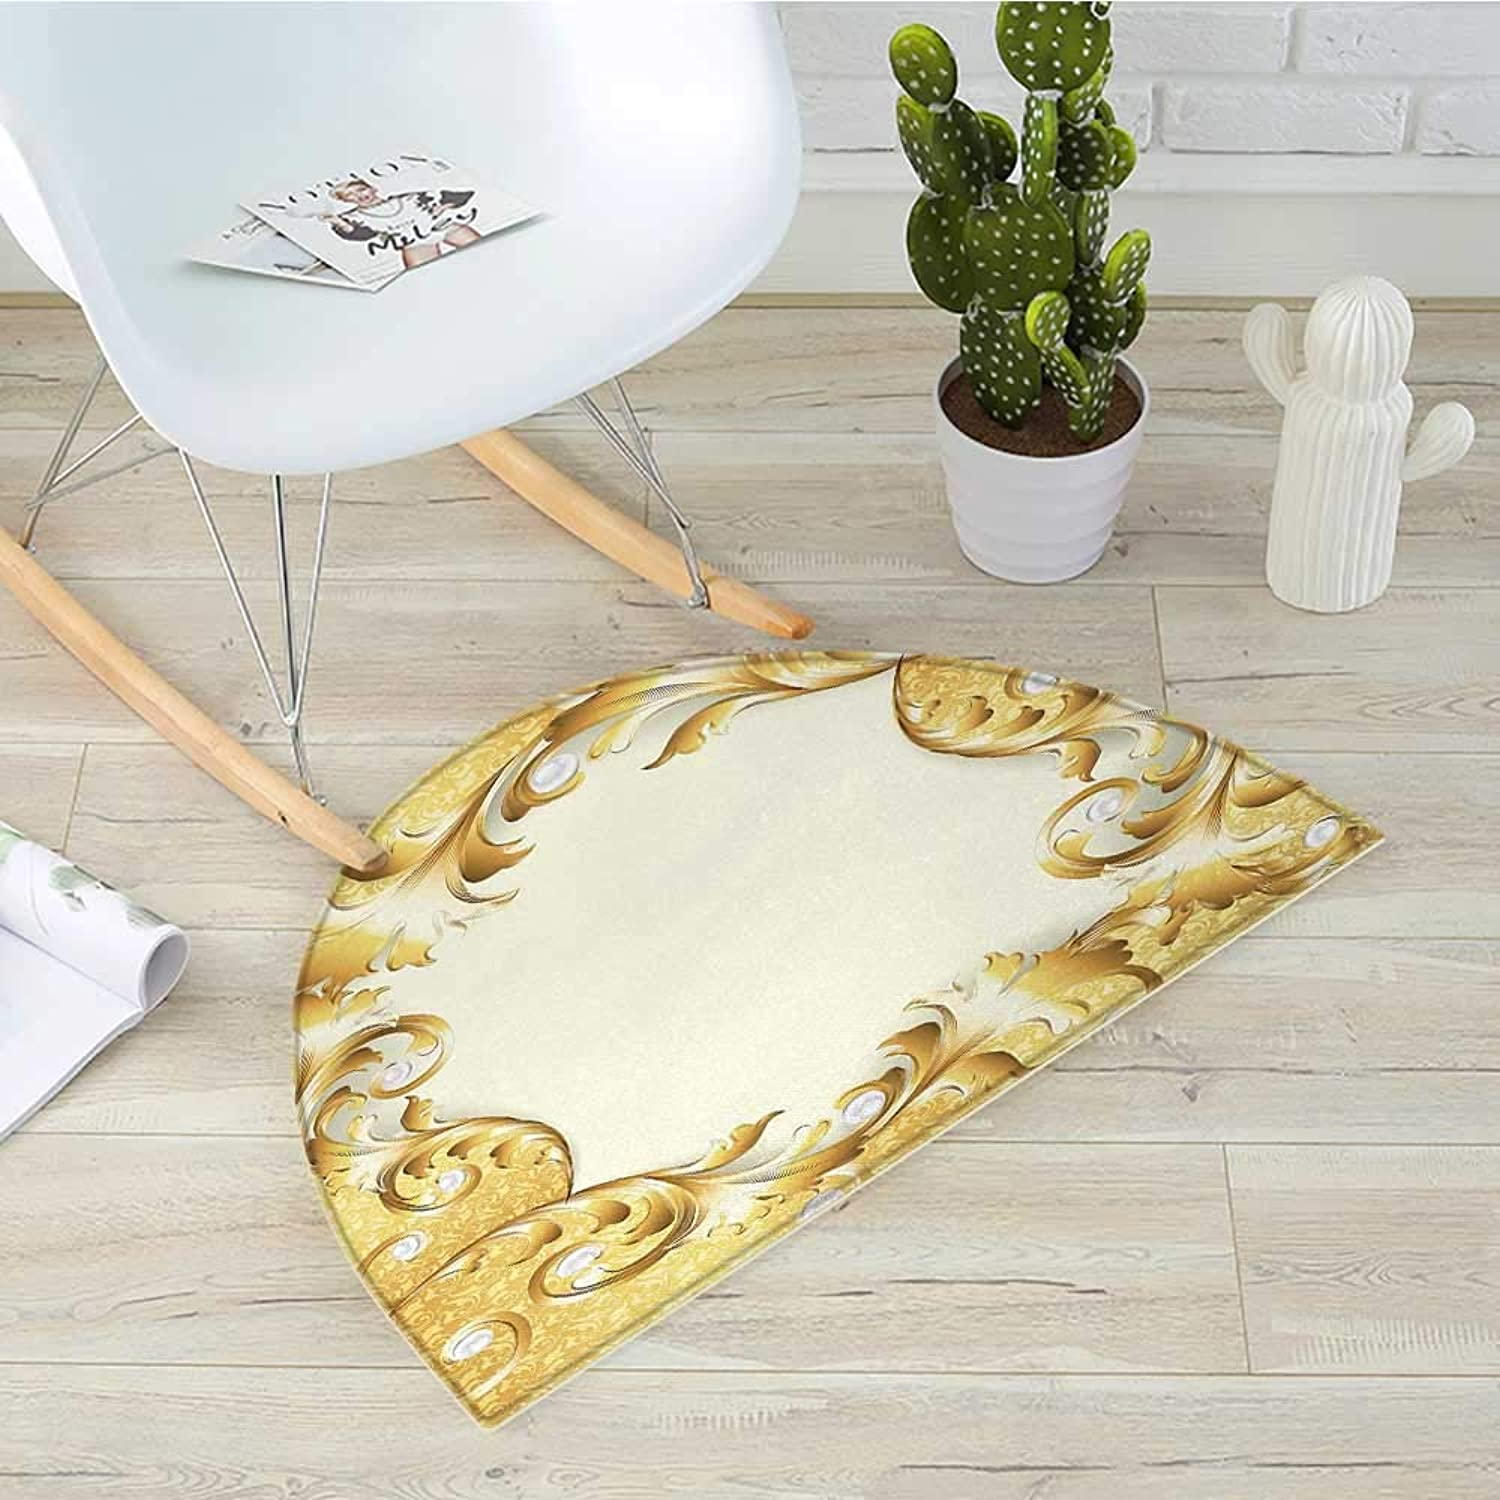 Pearls Semicircle Doormat Illustration of a Frame with Ornaments and Pearls Baroque Style Floral Patterns Halfmoon doormats H 43.3  xD 64.9  Cream Yellow